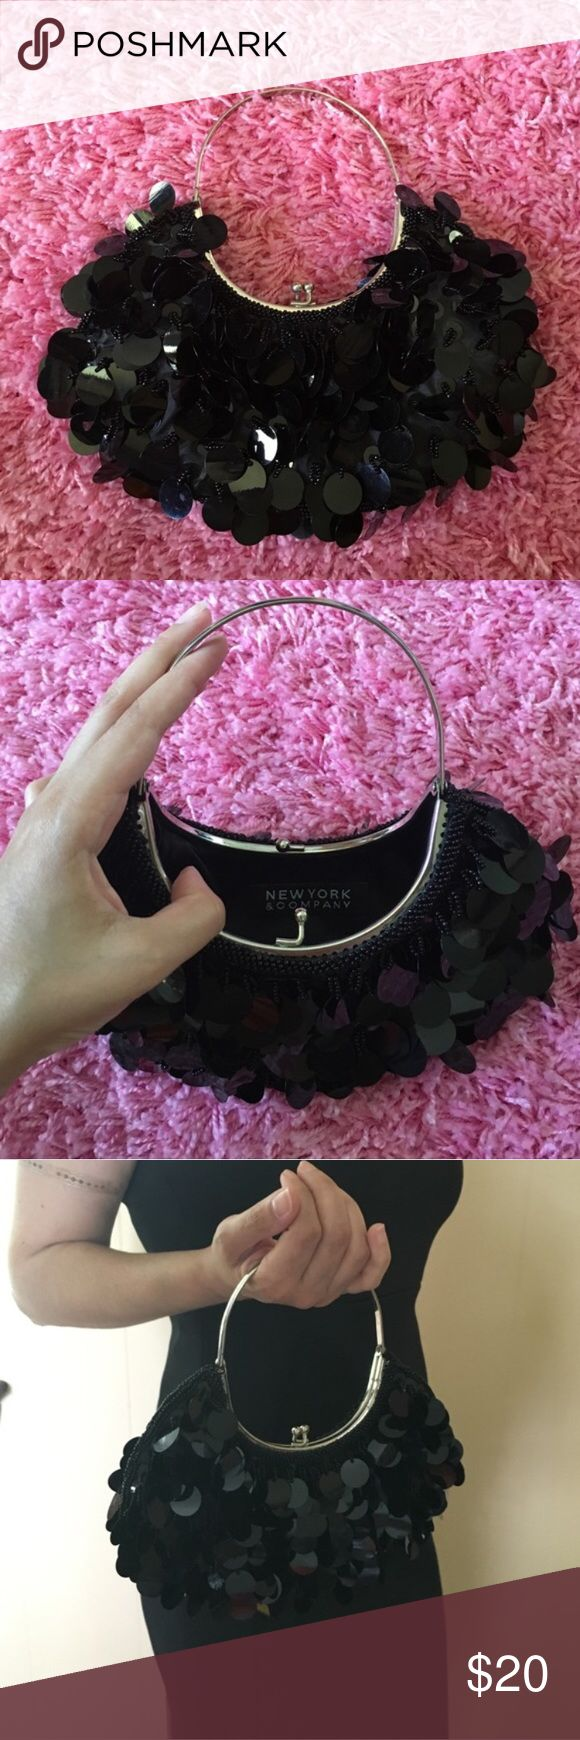 New York & Company Black Formal Clutch Really cute frilly bag for special occasions or a night out. No trades. Open to offers! In great condition! ❤️ New York & Company Bags Clutches & Wristlets